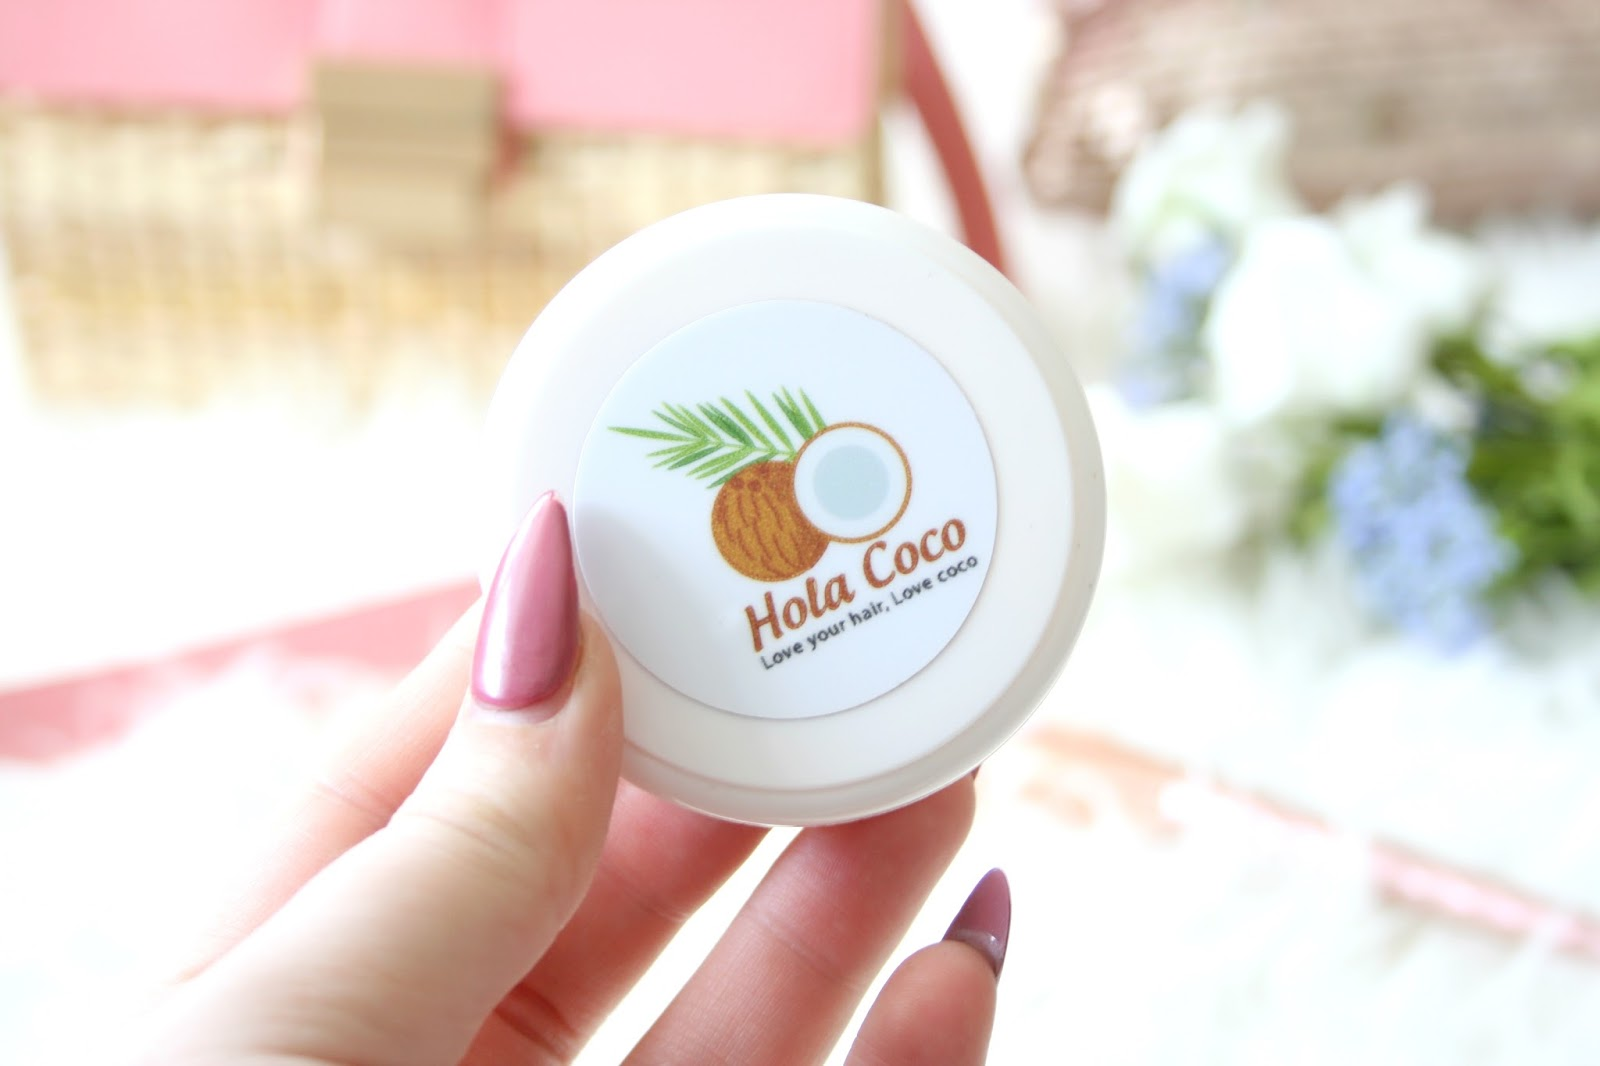 Hola Coco Hair Mask